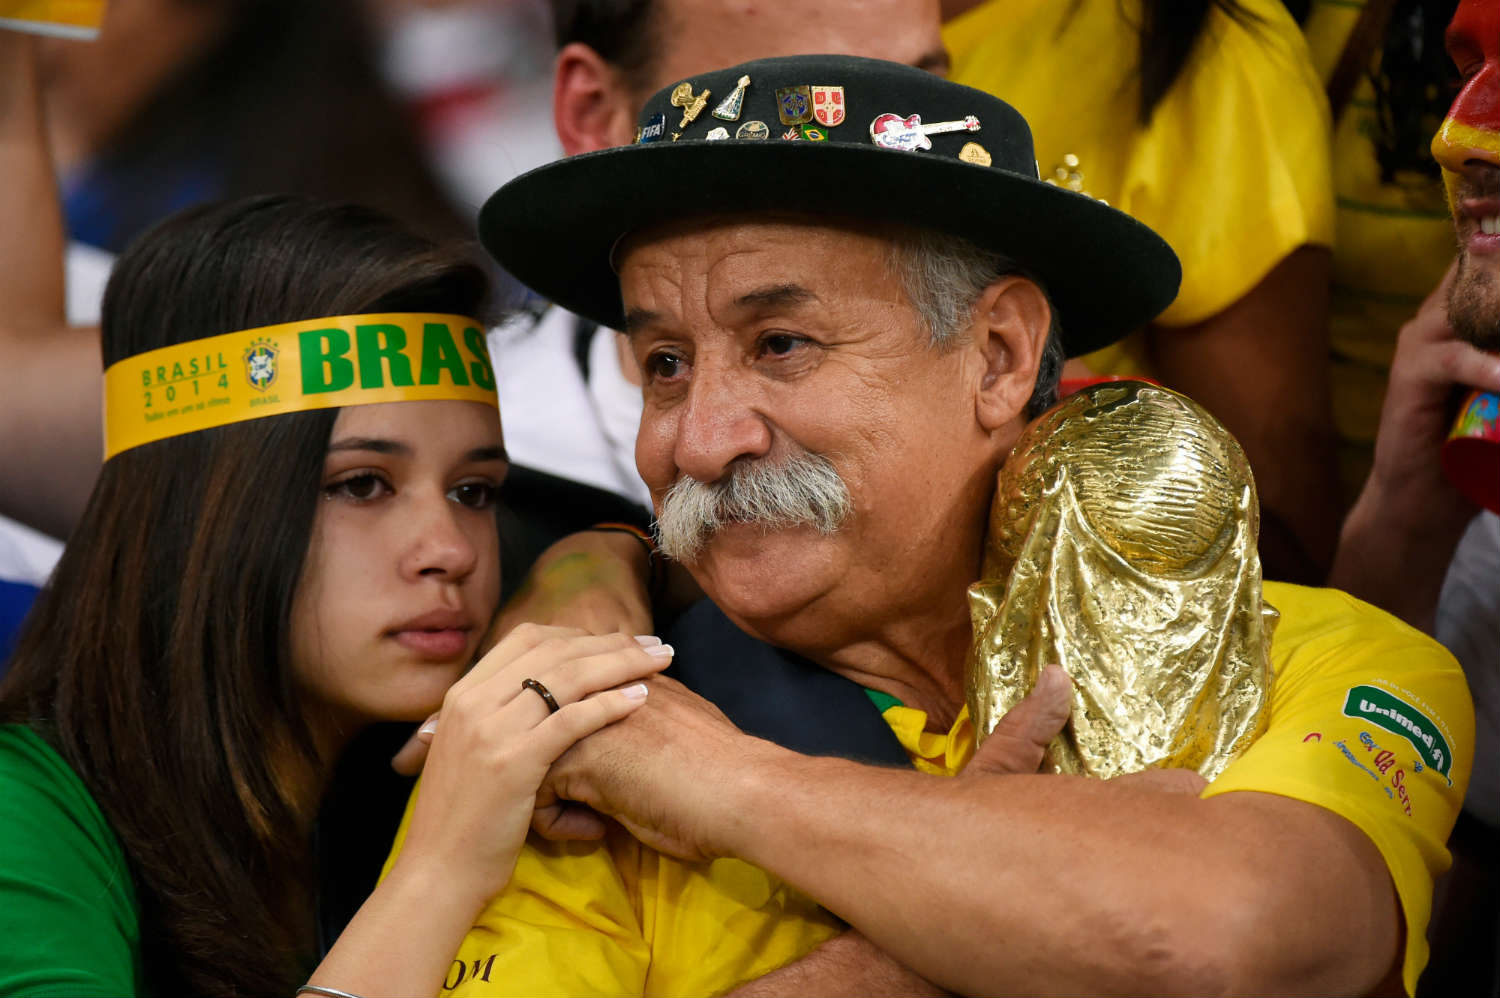 Brazilian fans react with sorrow as their team goes down in the World Cup semi-final